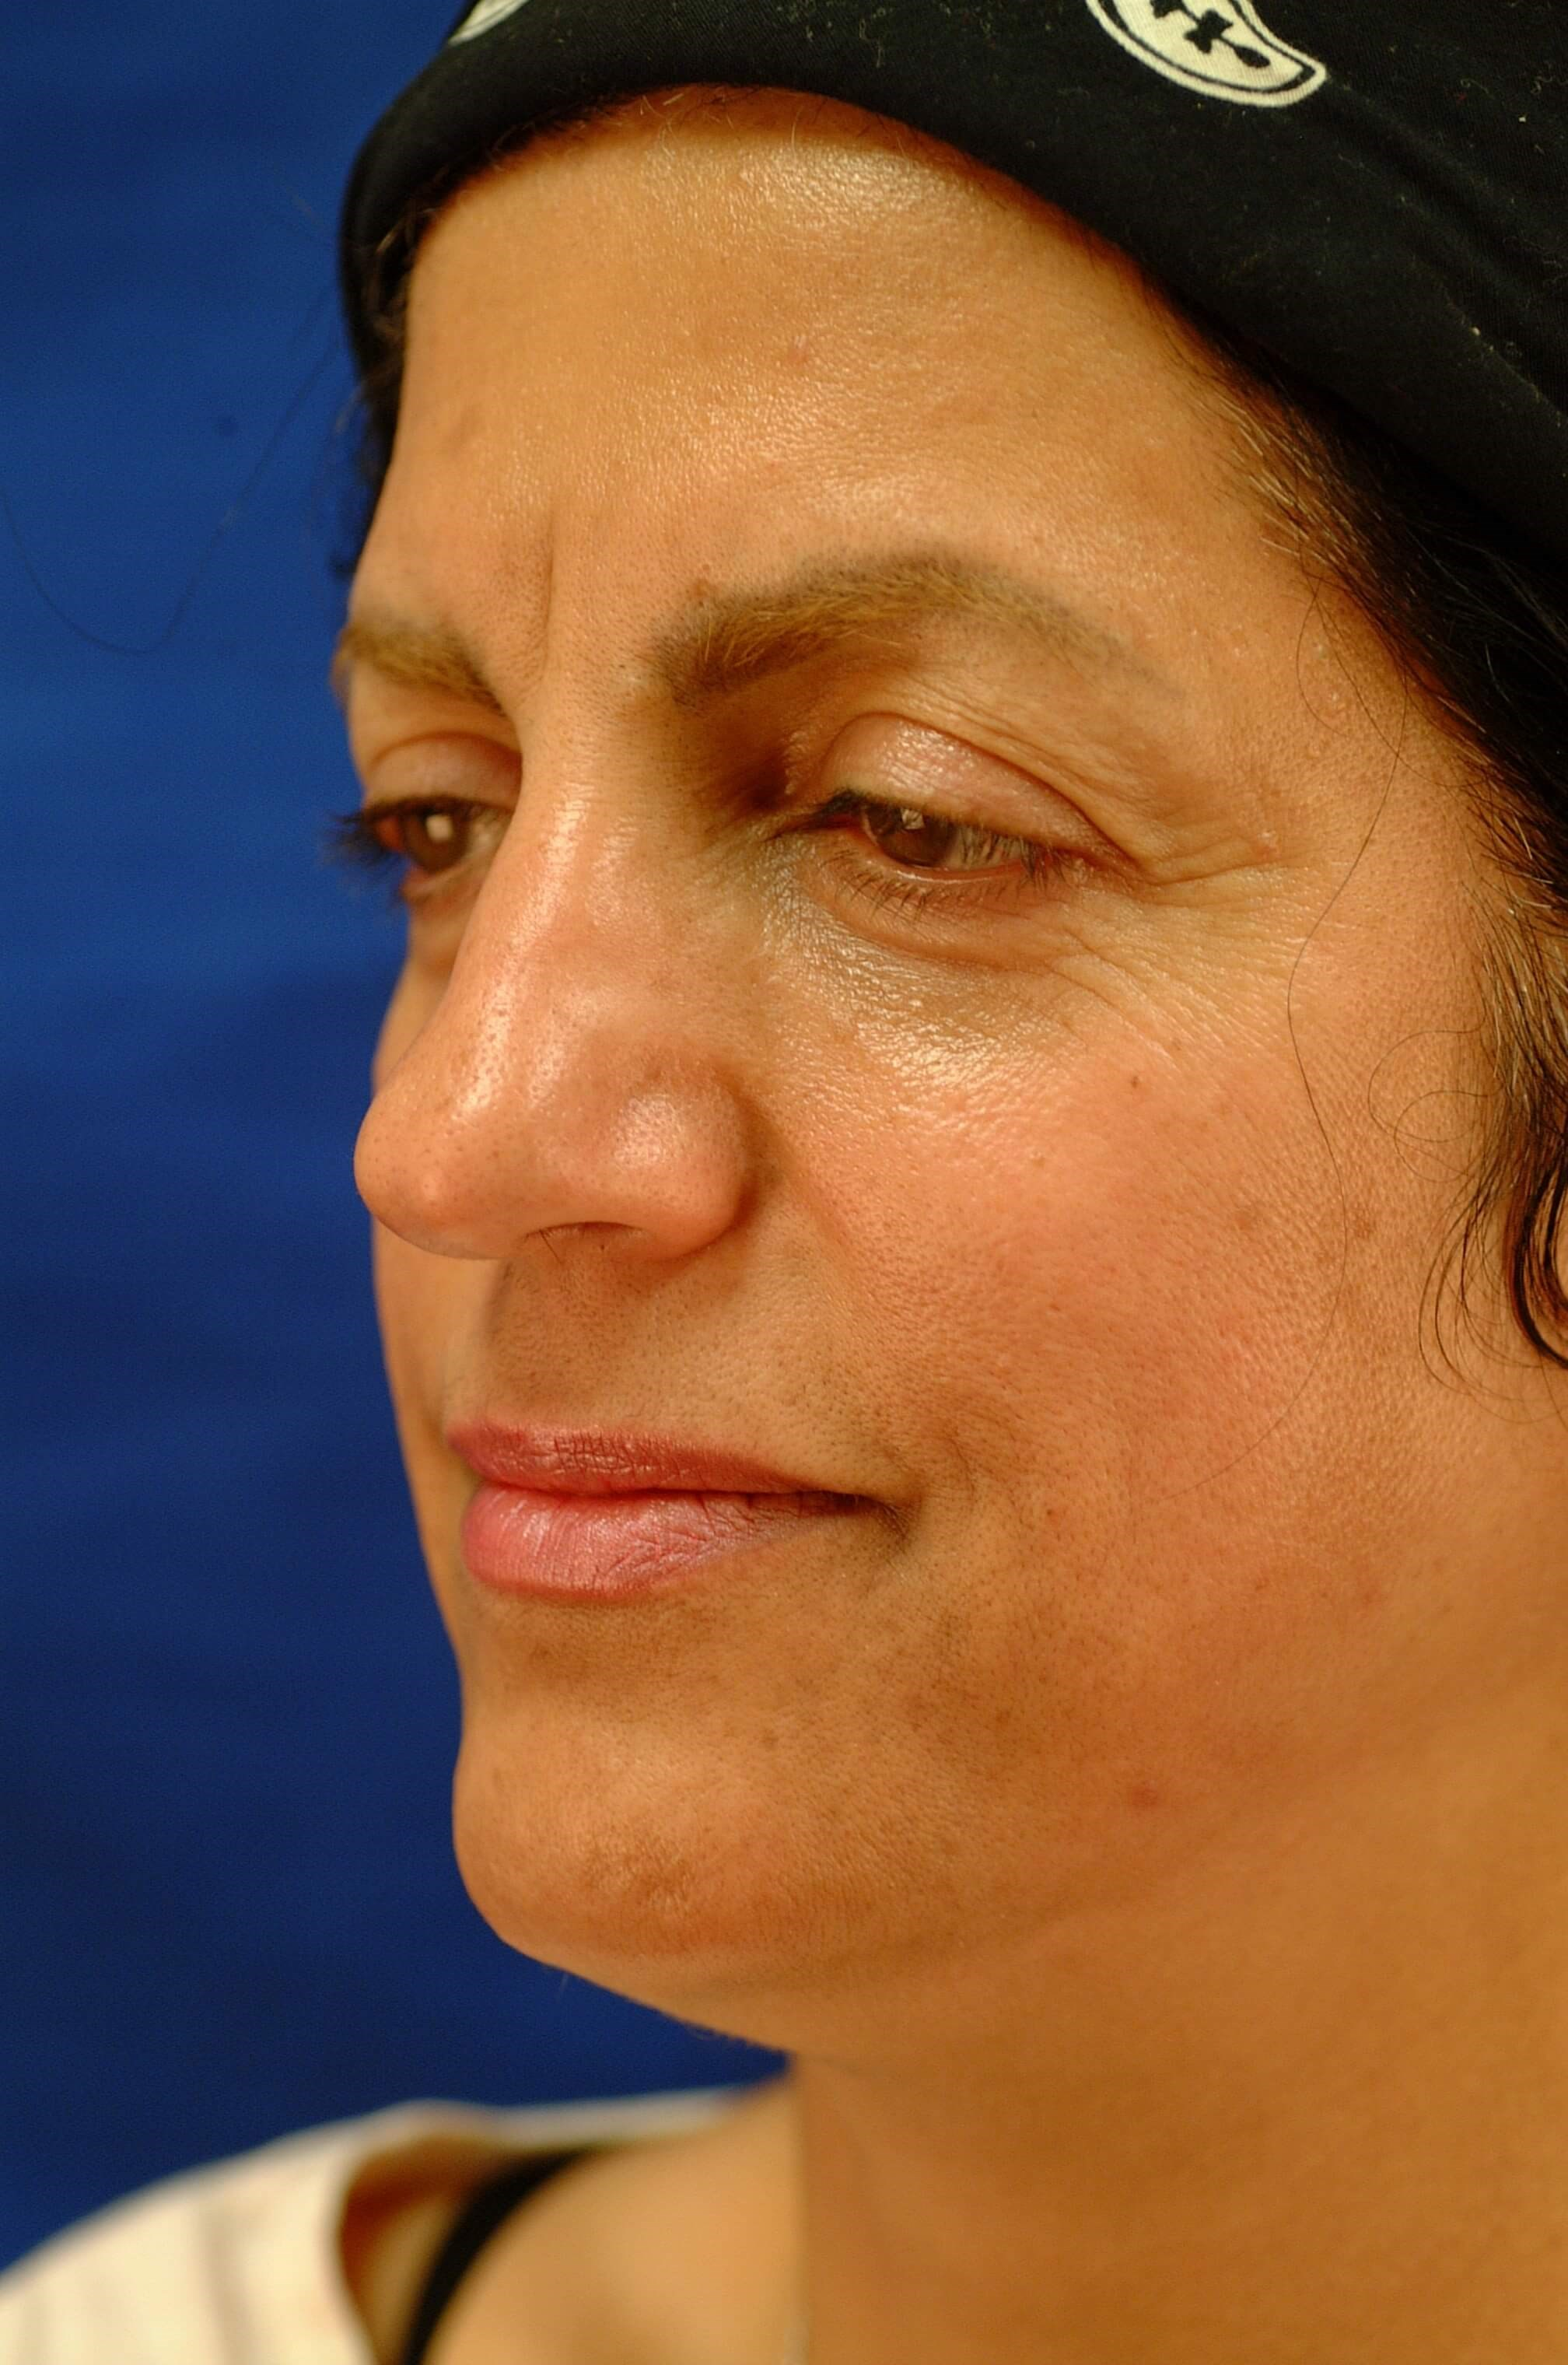 Brow Lift & Tip Rhinoplasty Before